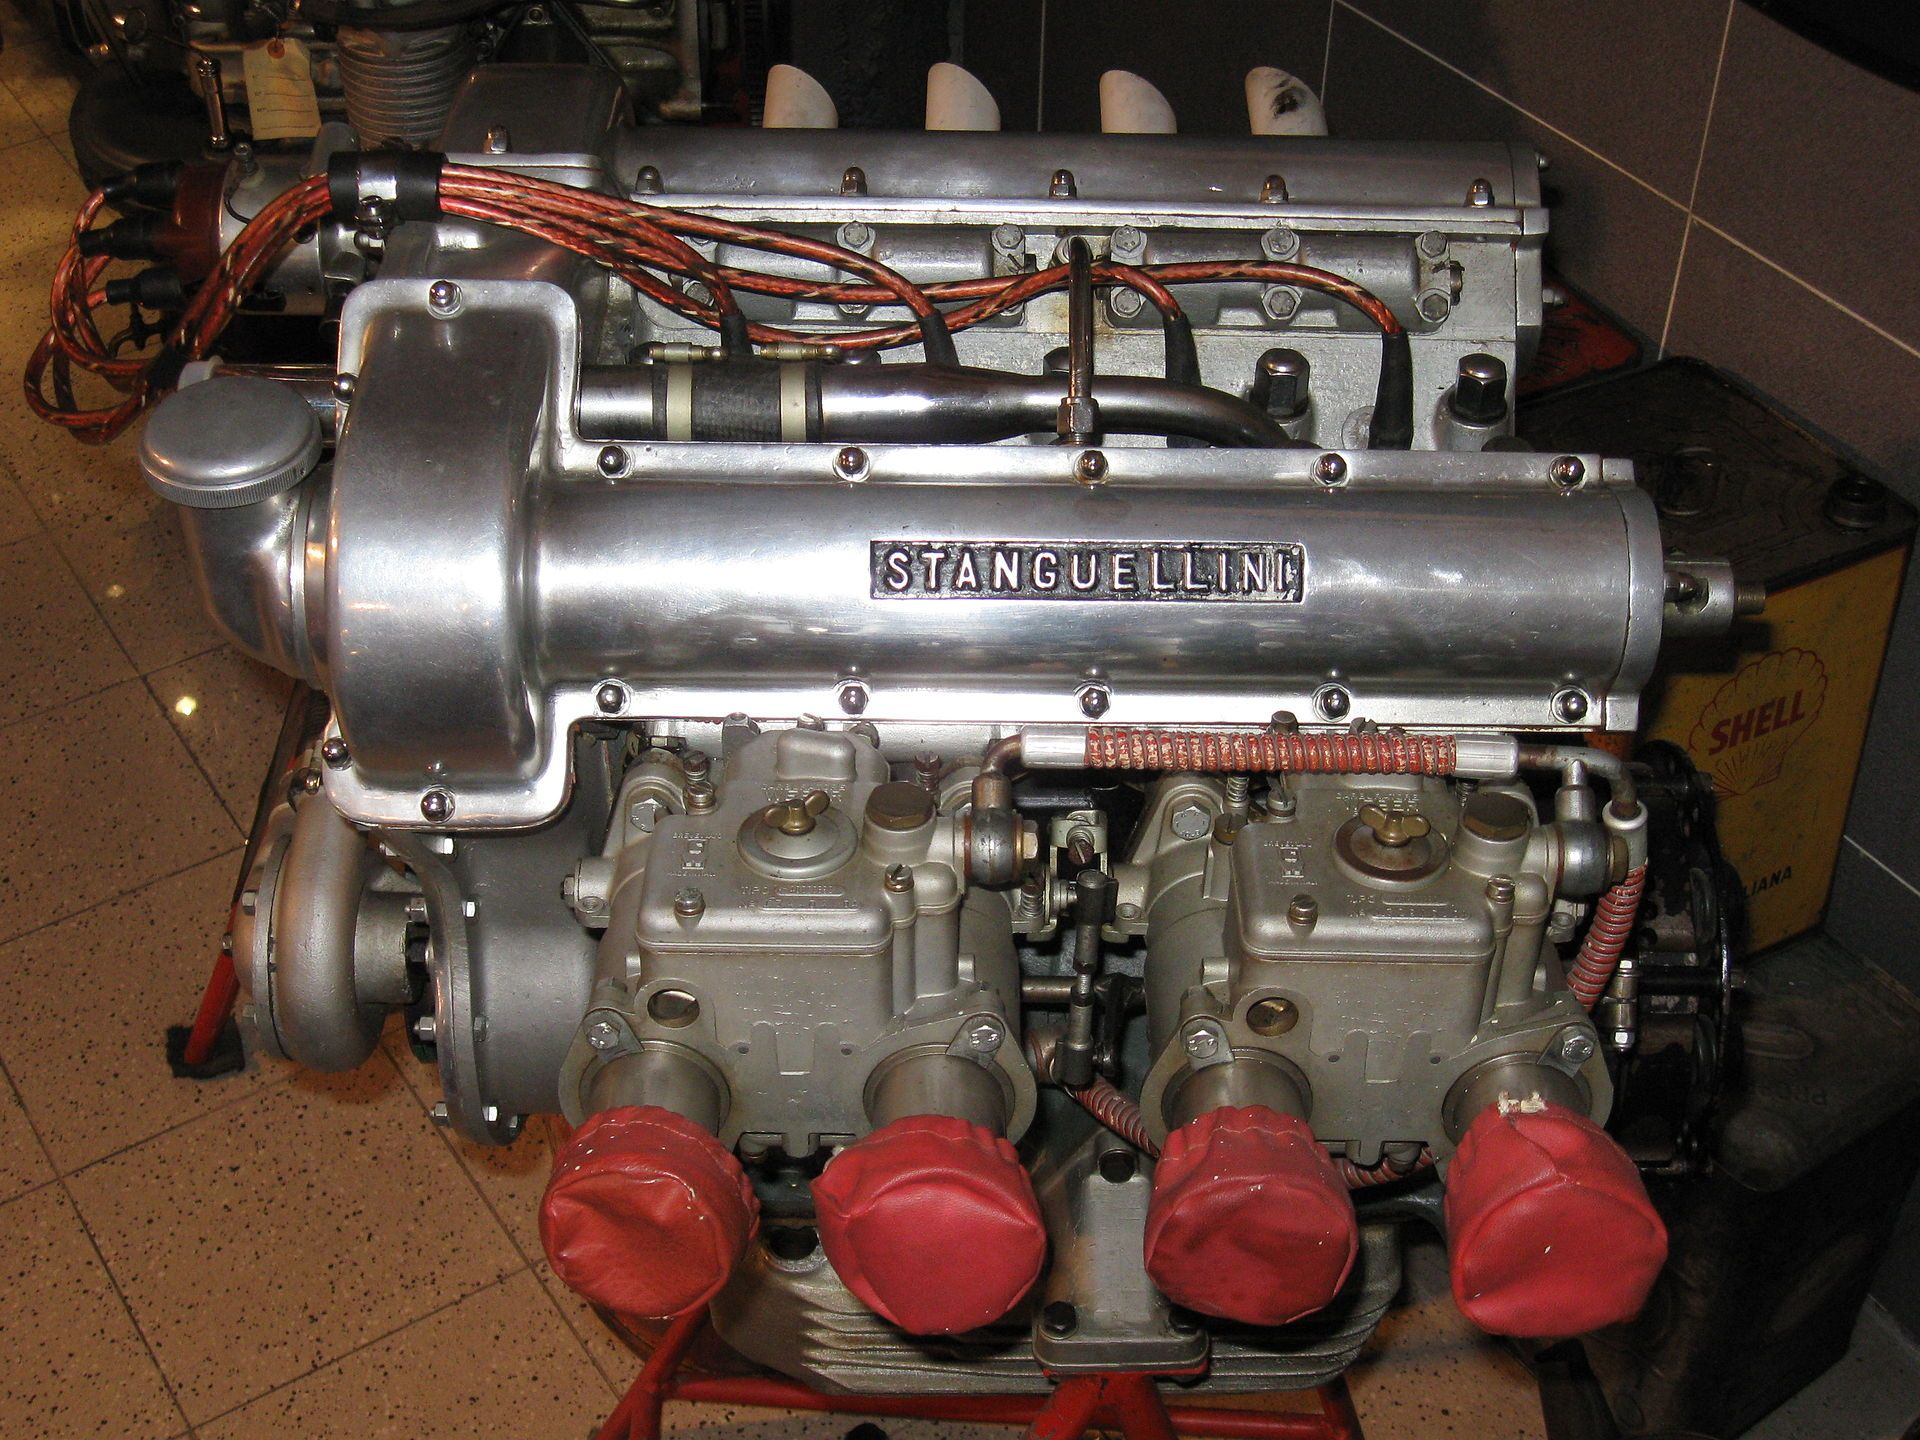 Stanguellini racing engine